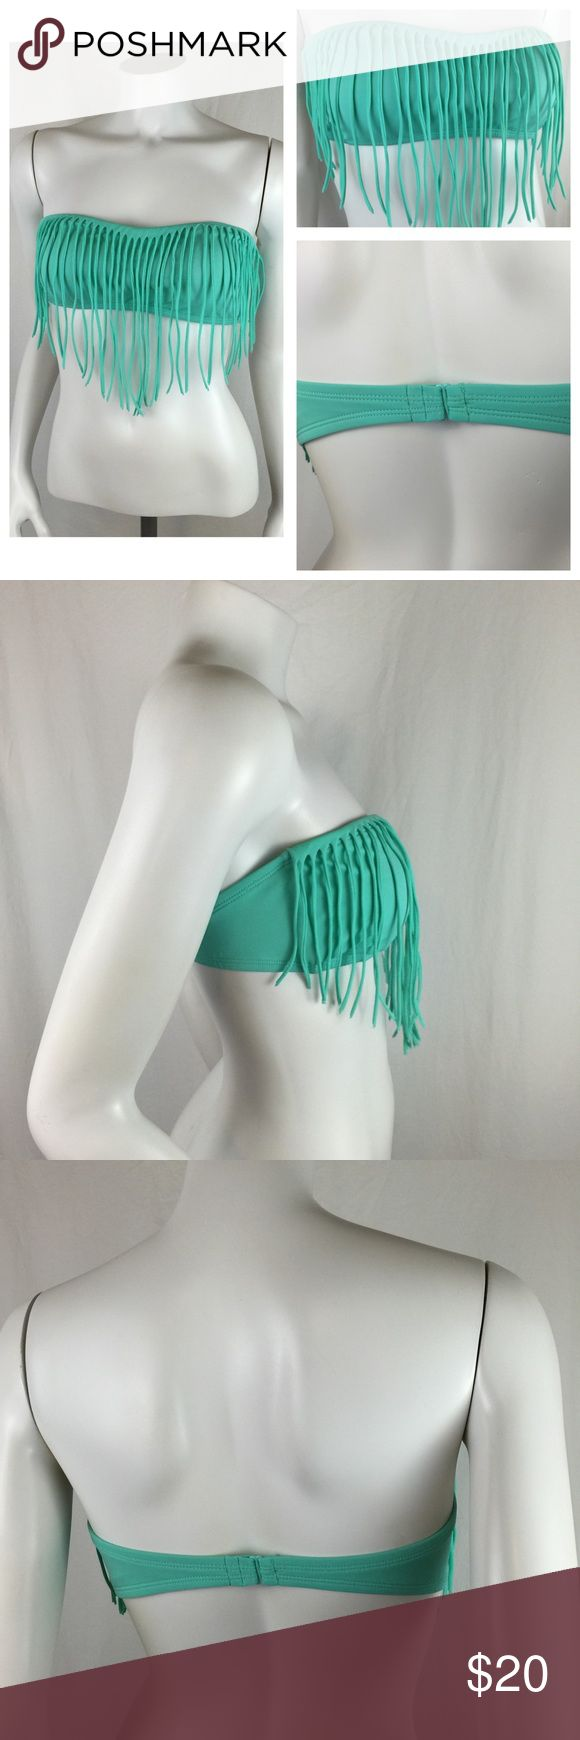 LA Hearts Teal Blue Fringe Festival Bikini Top Hot hot hot LA Hearts Teal Blue Fringe Festival Bikini Top. Awesome fringe over the top and a nice hook back. Size large in great condition. Perfect for the pool or at a festival. LA Hearts Swim Bikinis